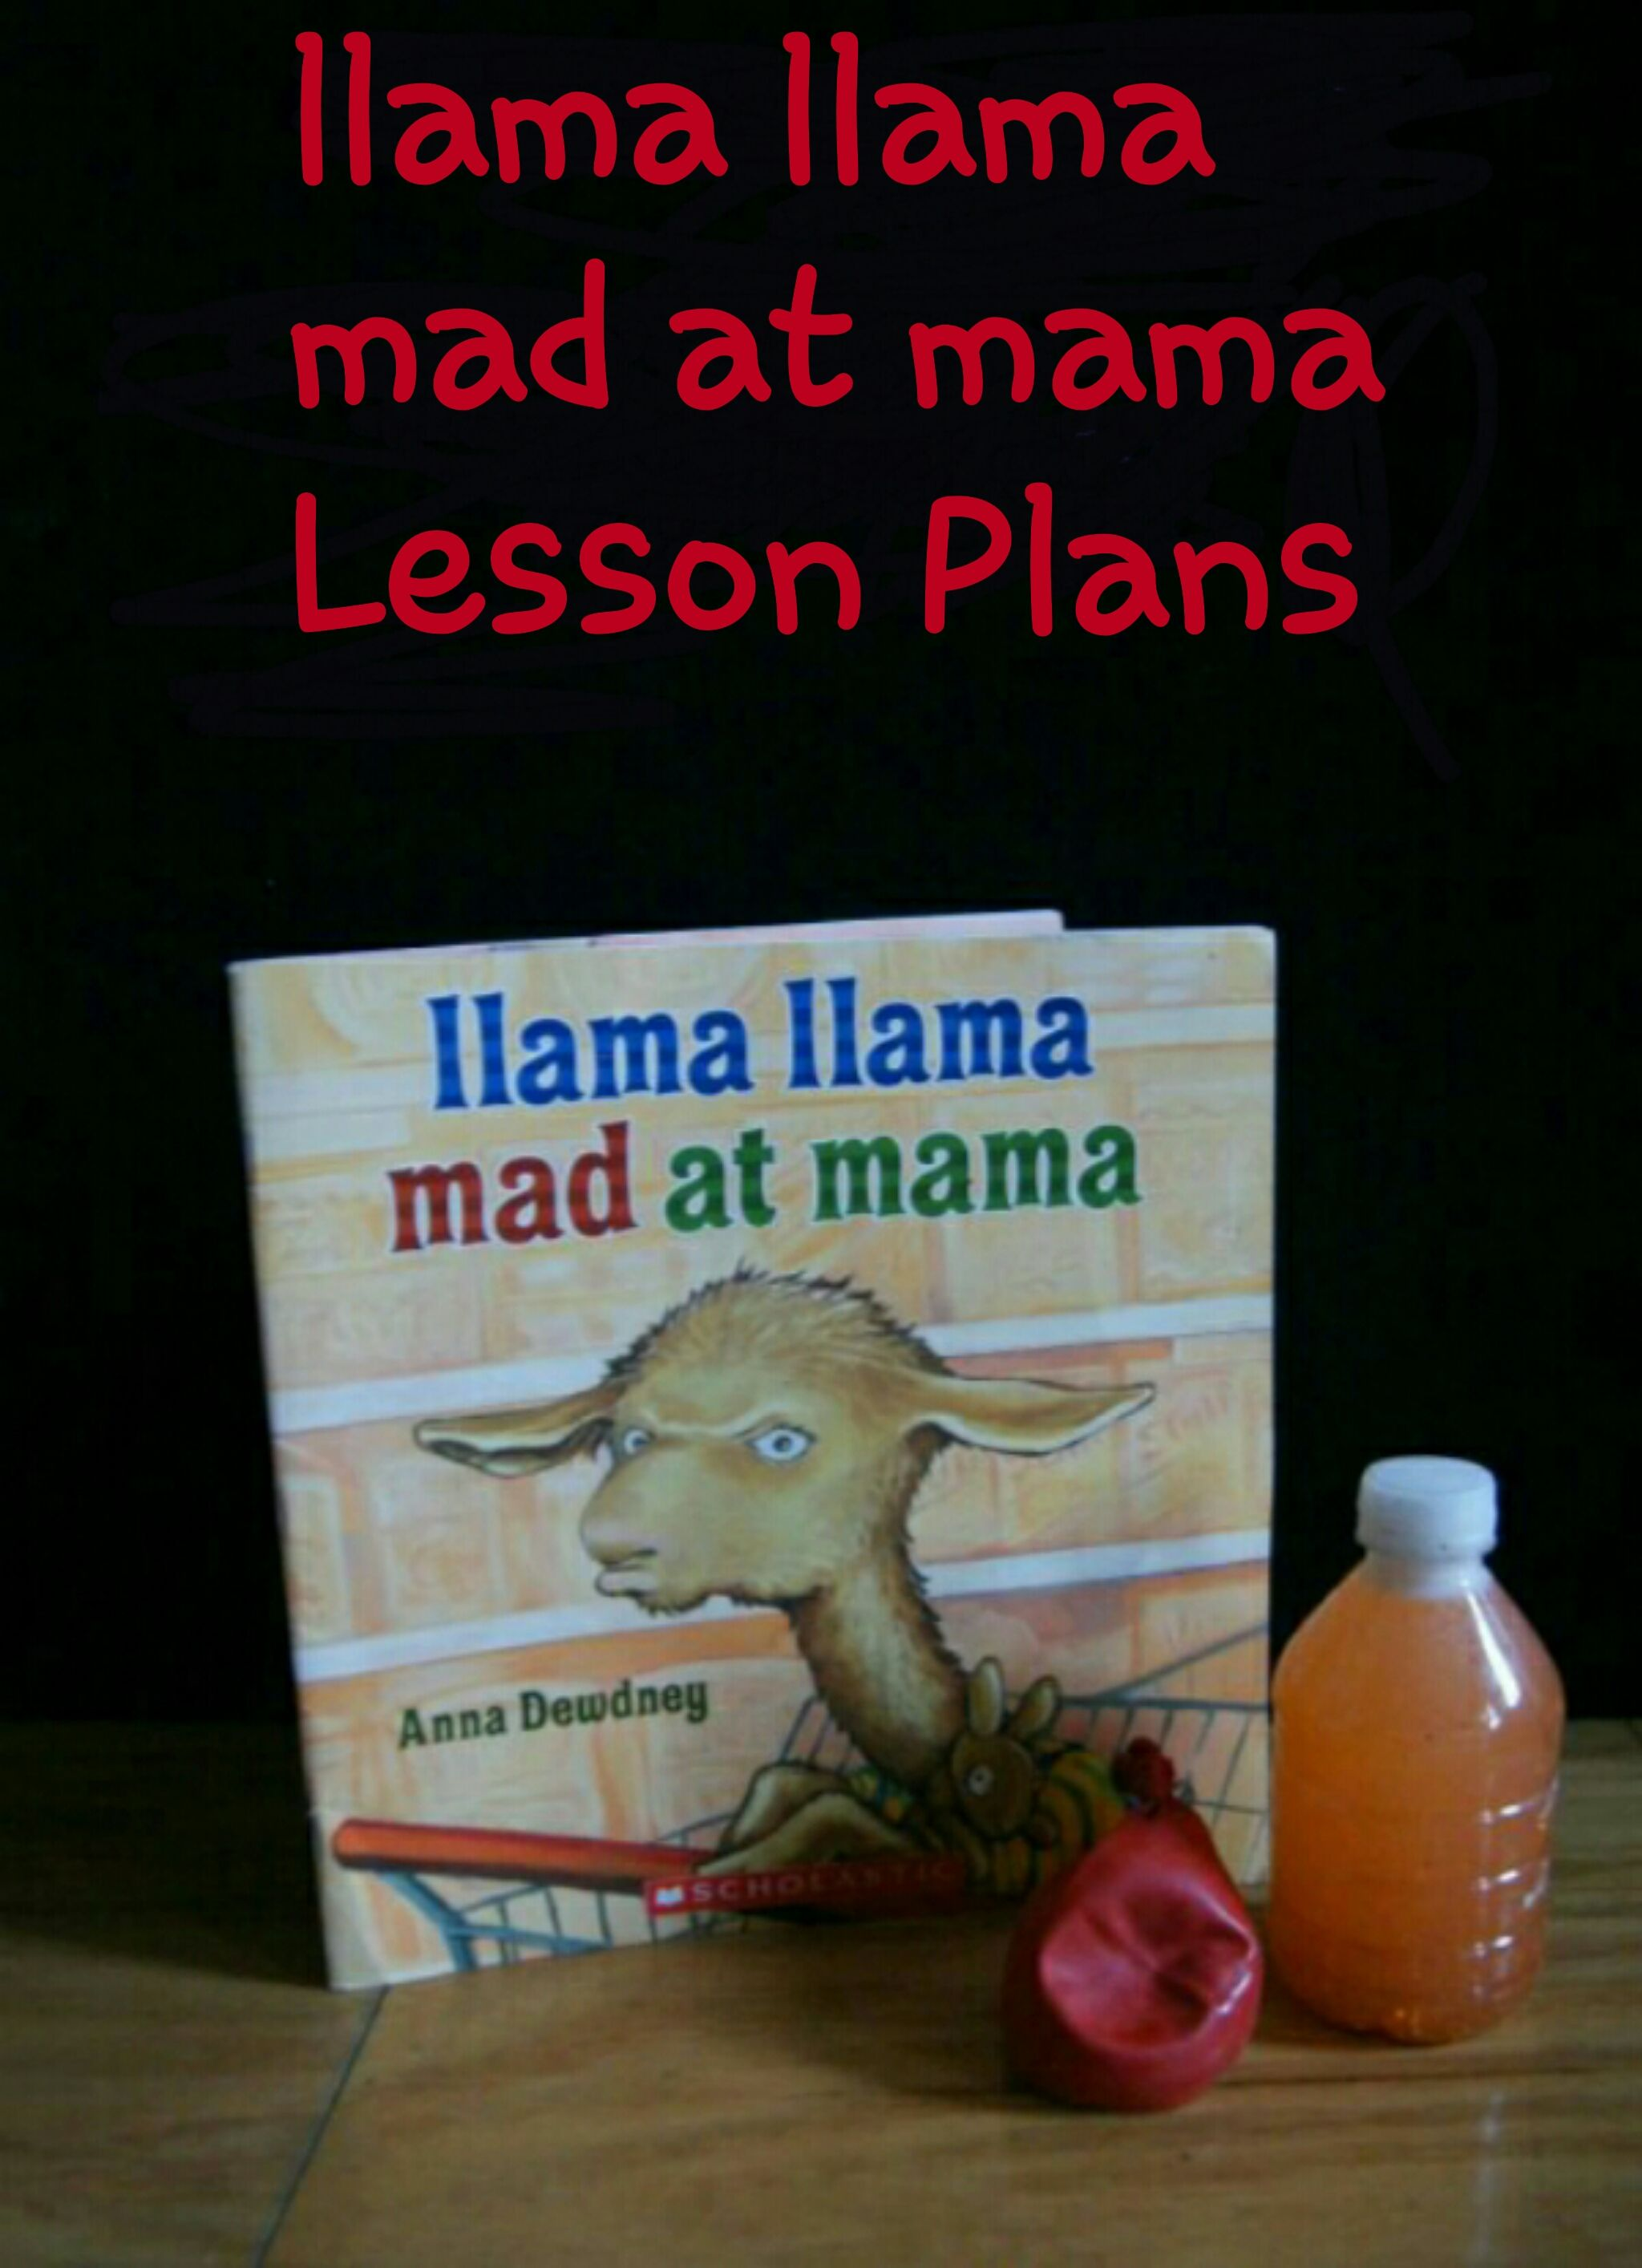 Try These Llama Llama Mad At Mama Lesson Plans With Your